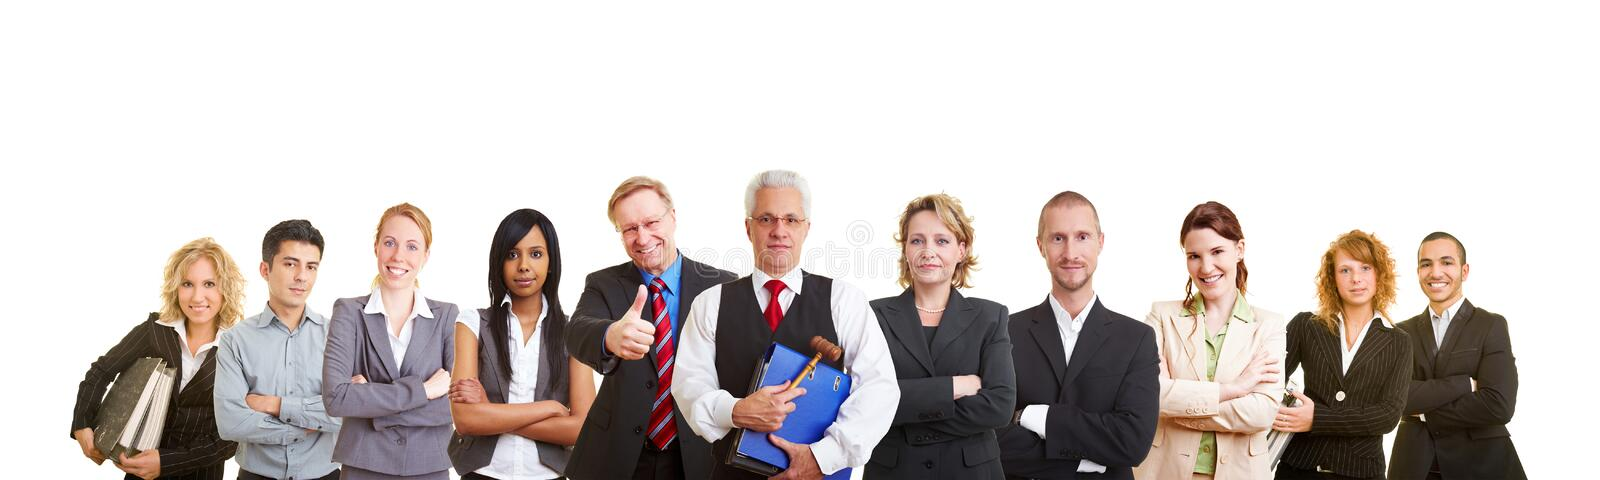 Download Big team of lawyers stock image. Image of economy, female - 16706279